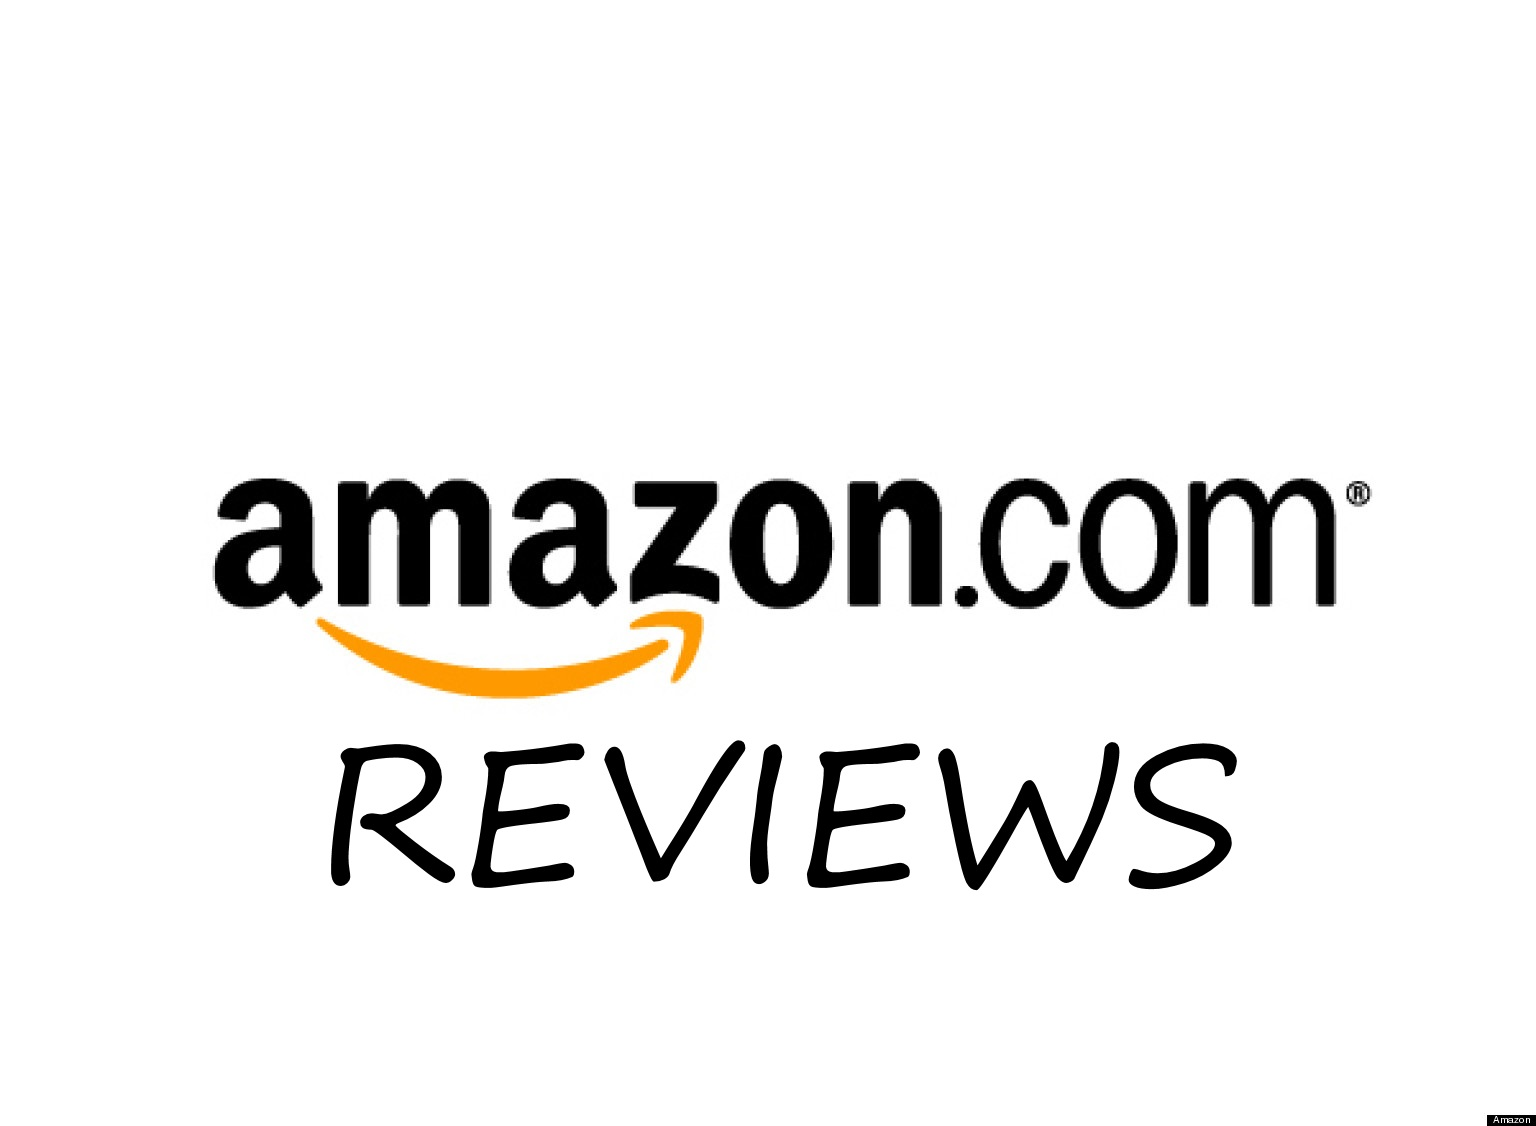 post a 5 star amazon review for any product for $5